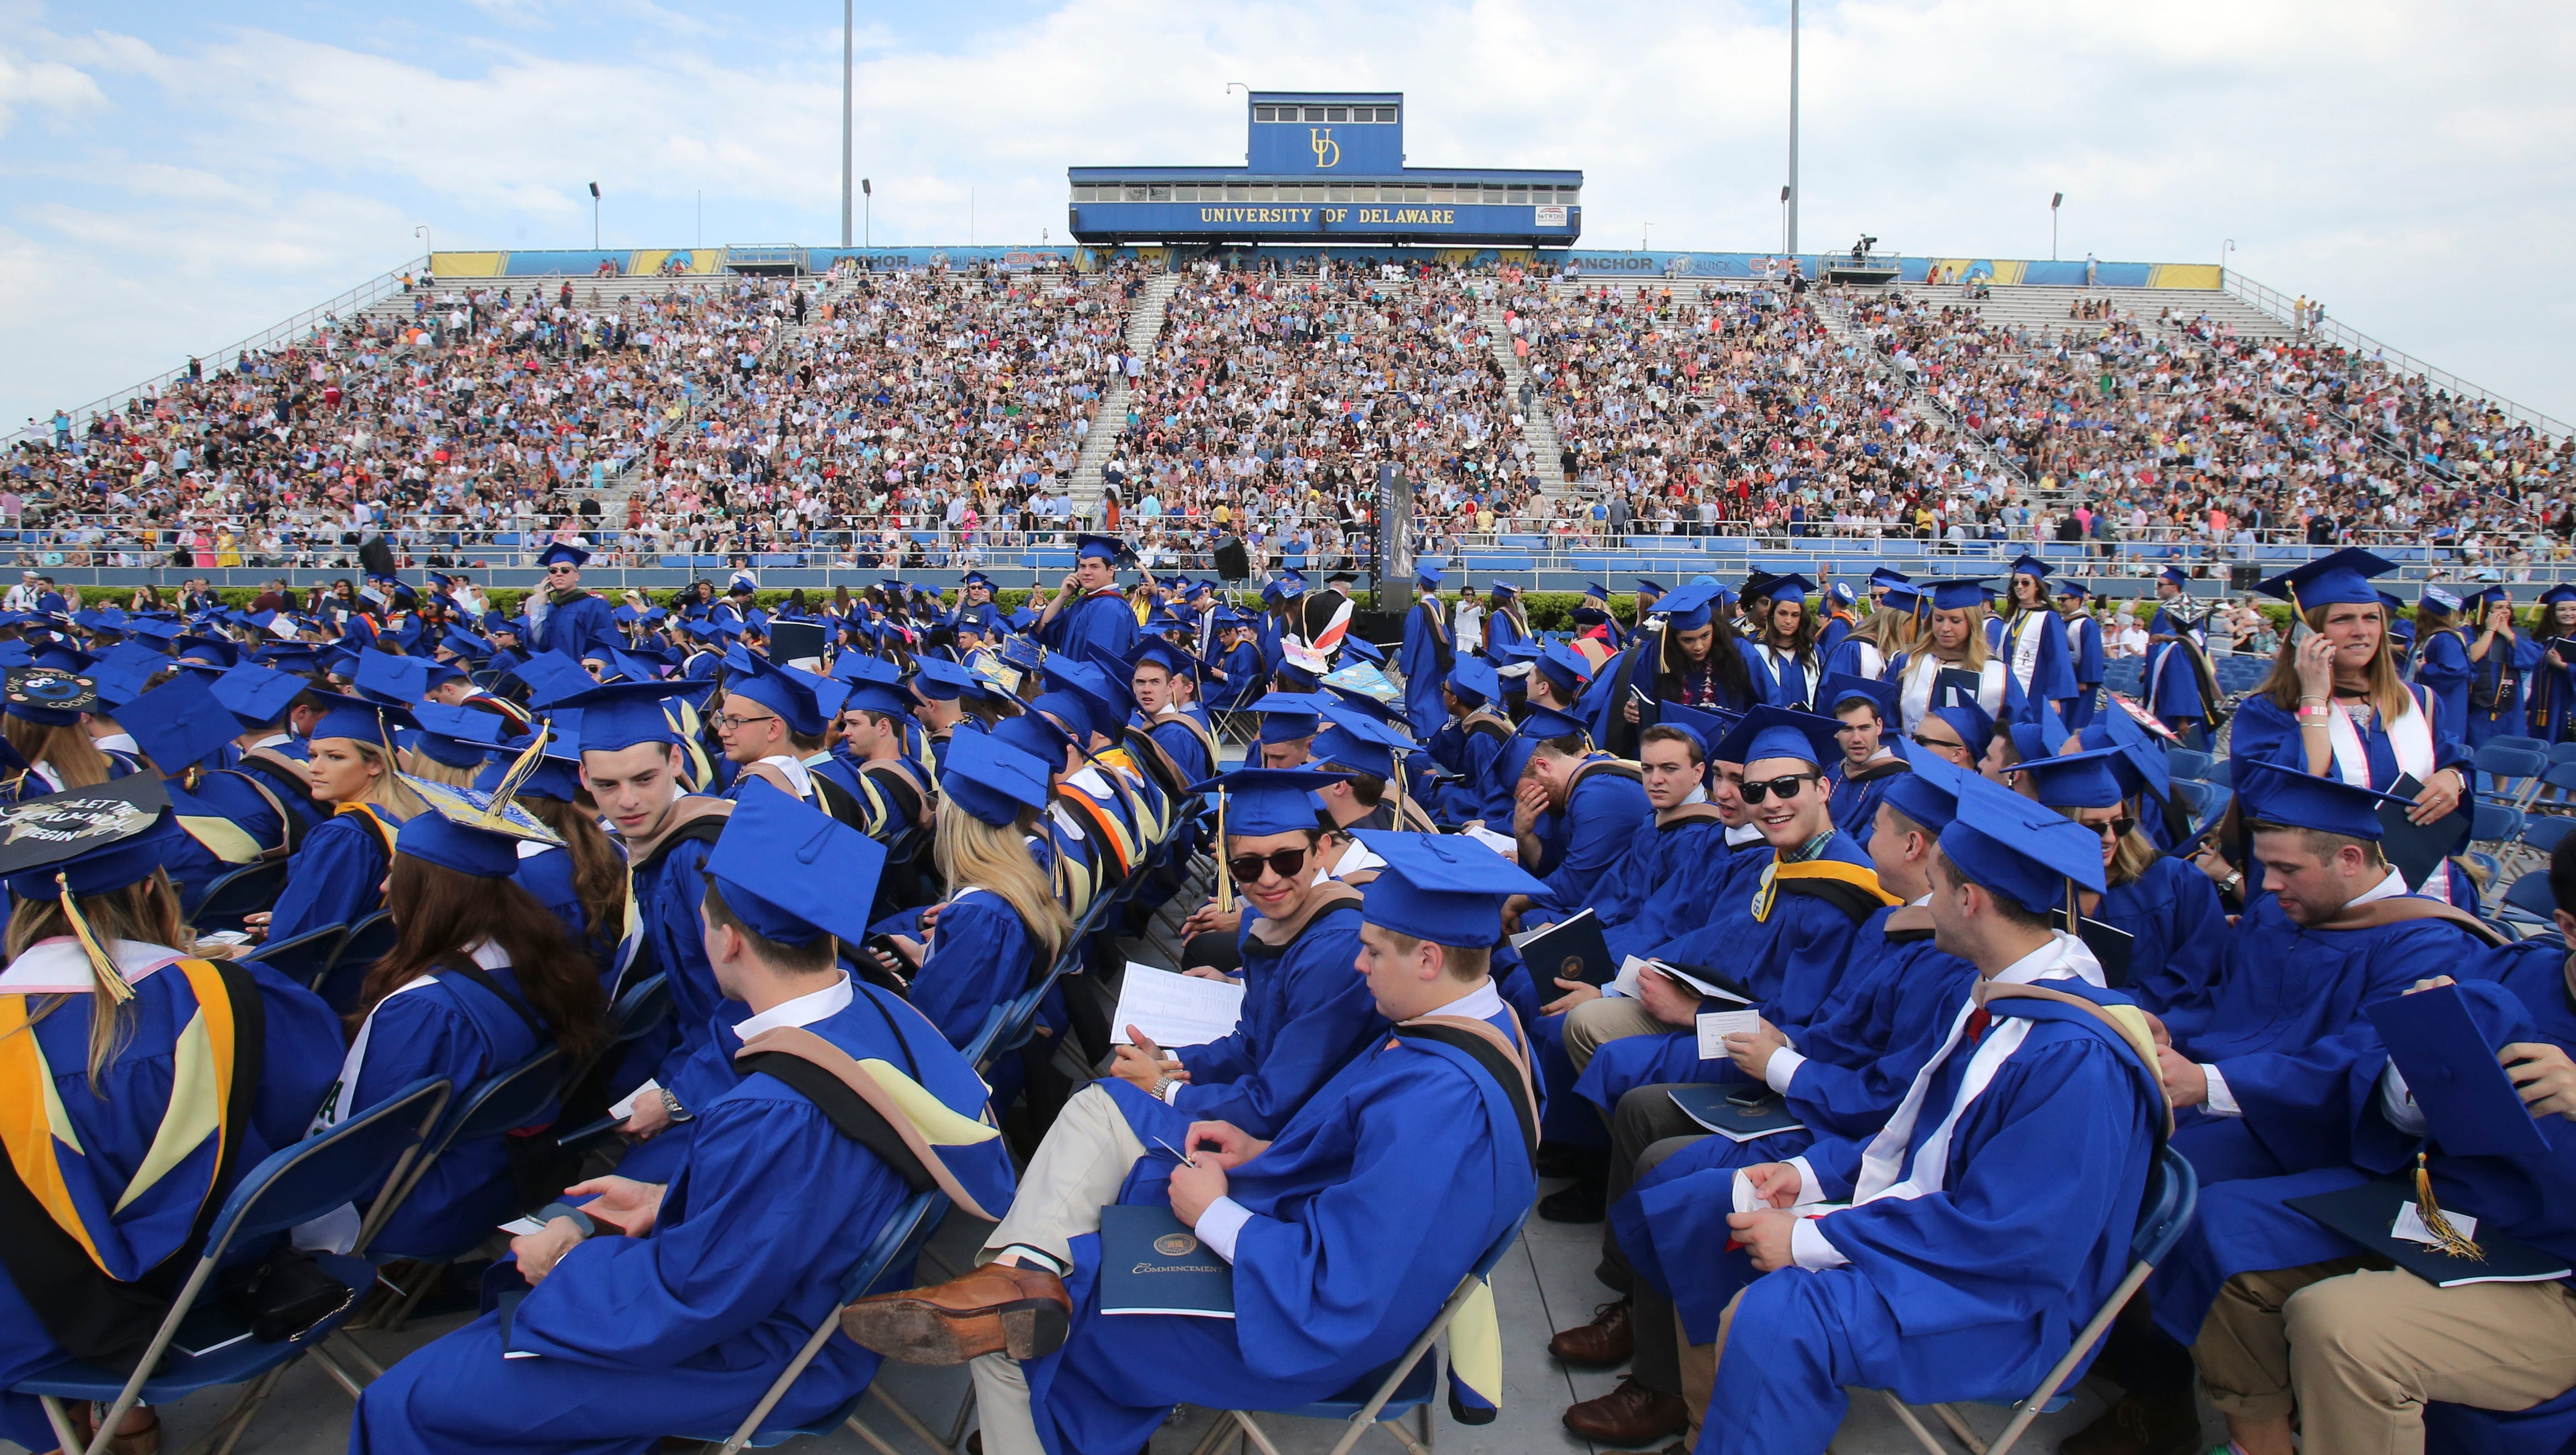 University of Delaware graduation: Here's here's what you need to know